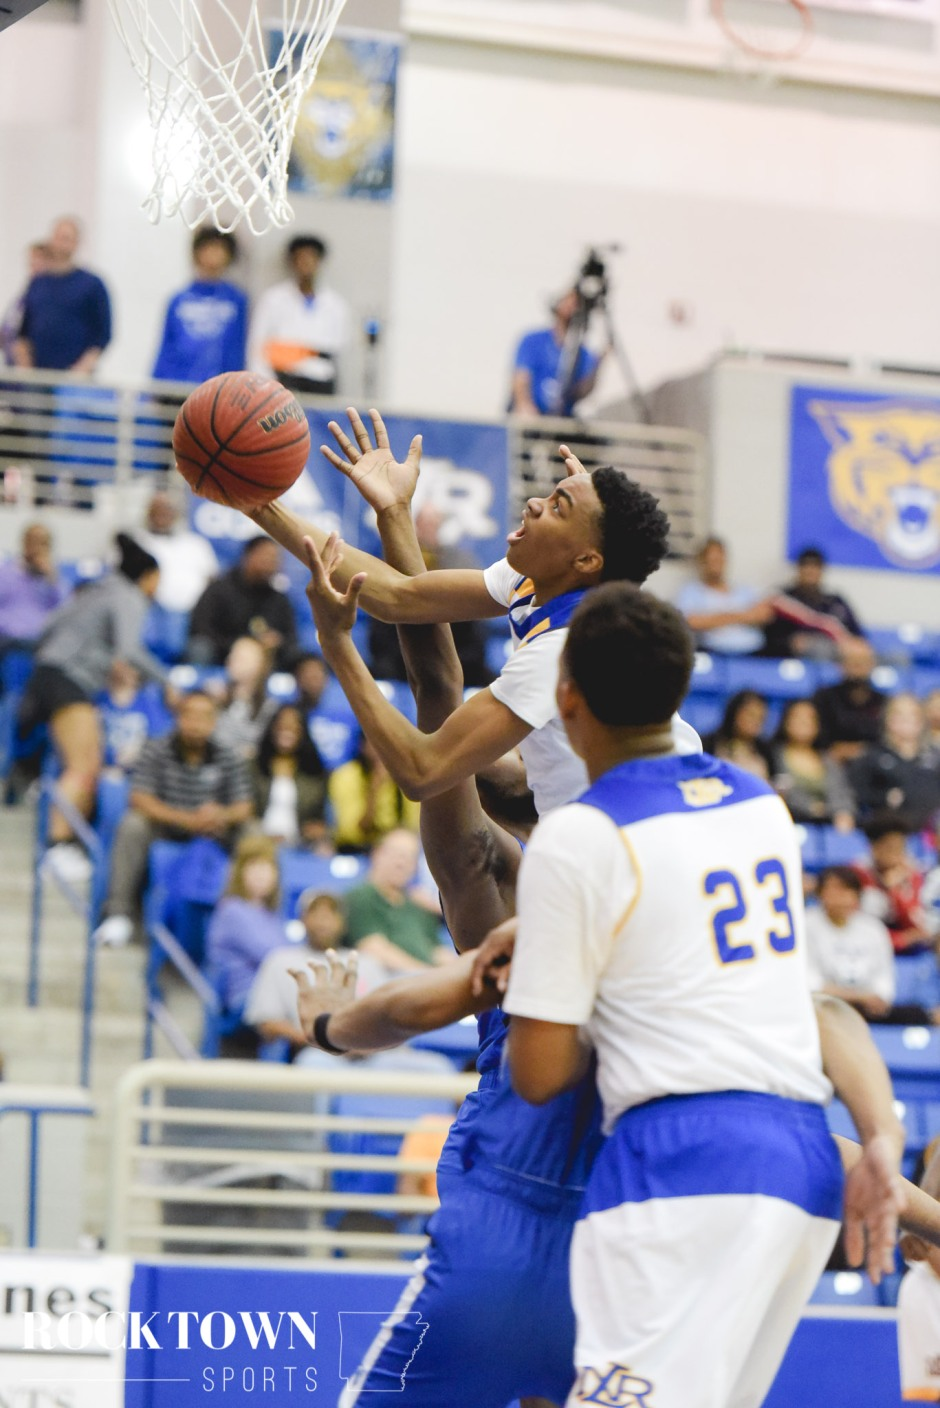 Conway_NLR_bball19(i)-47